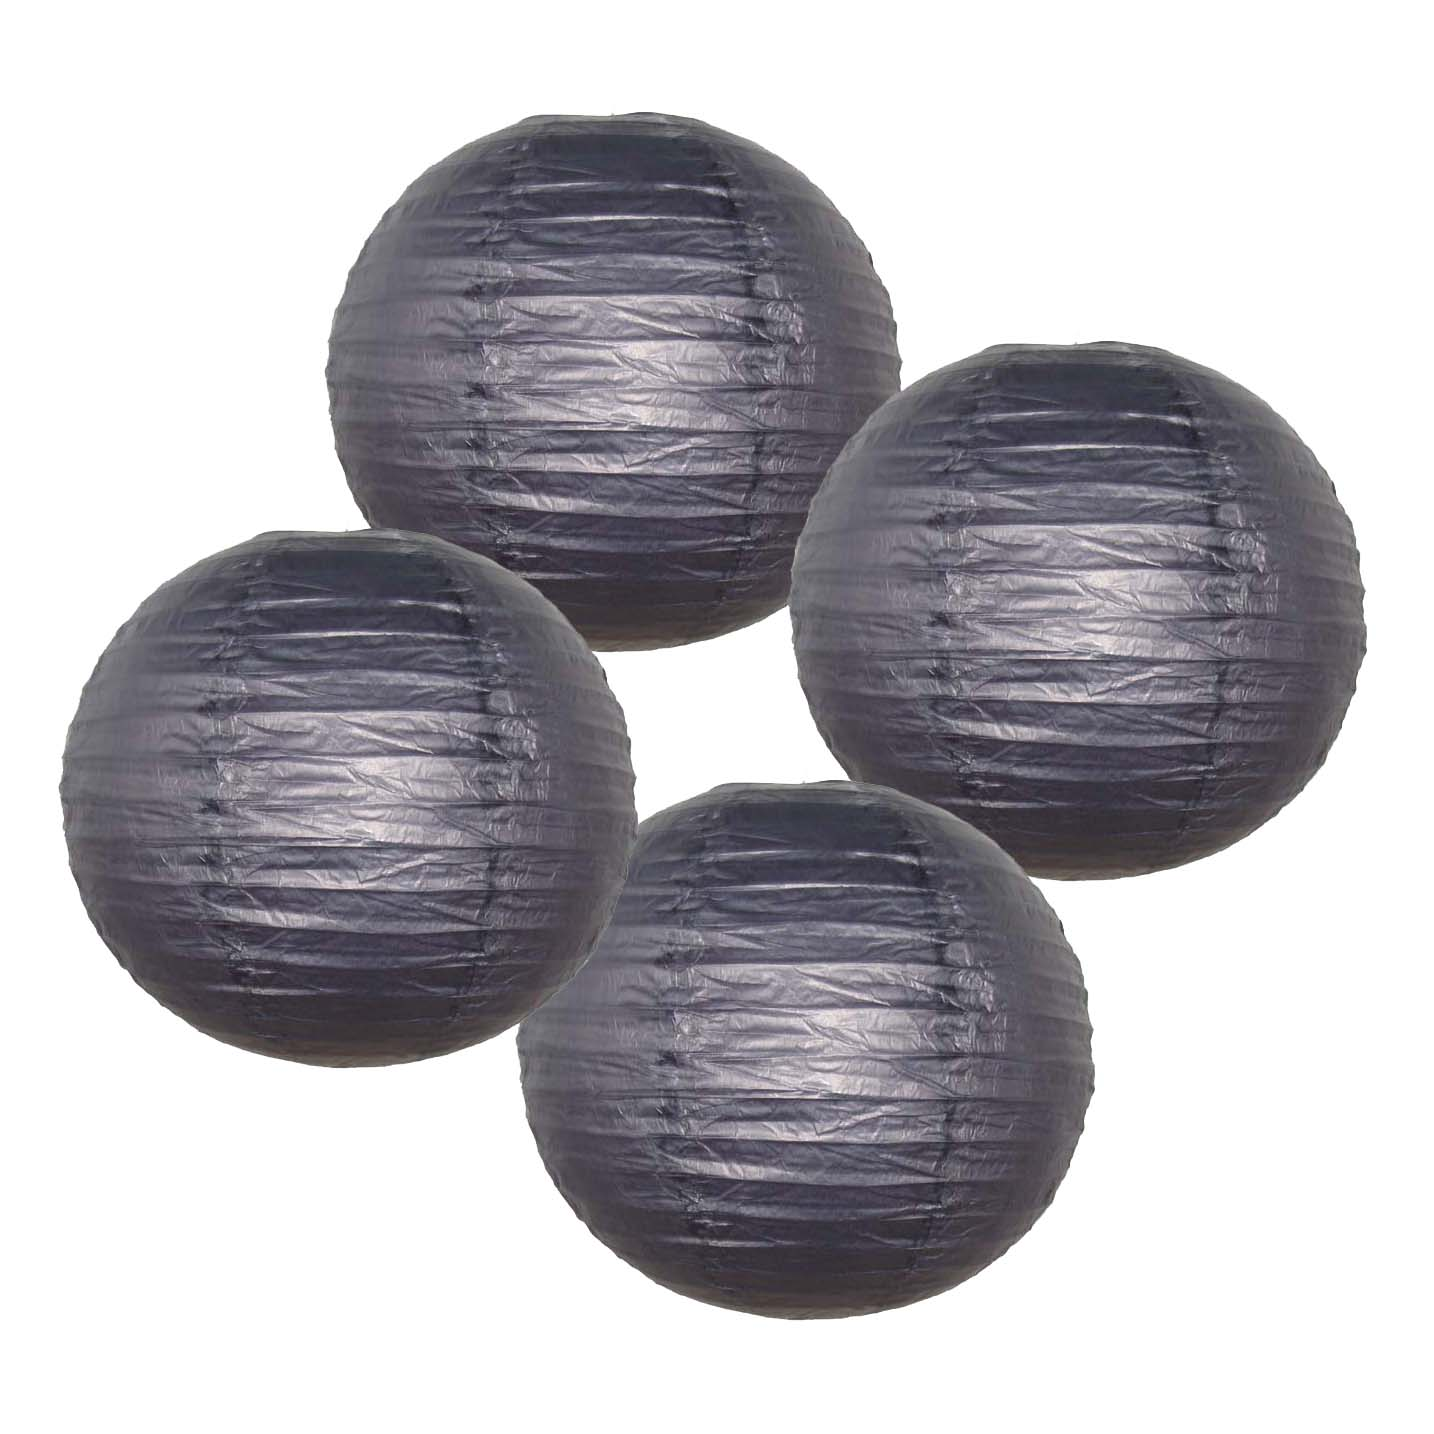 "Just Artifacts 8"" Black Paper Lanterns (Set of 4) - Decorative Round Chinese/Japanese Paper Lanterns for Birthday Parties, Weddings, Baby Showers, and Life Celebrations!"